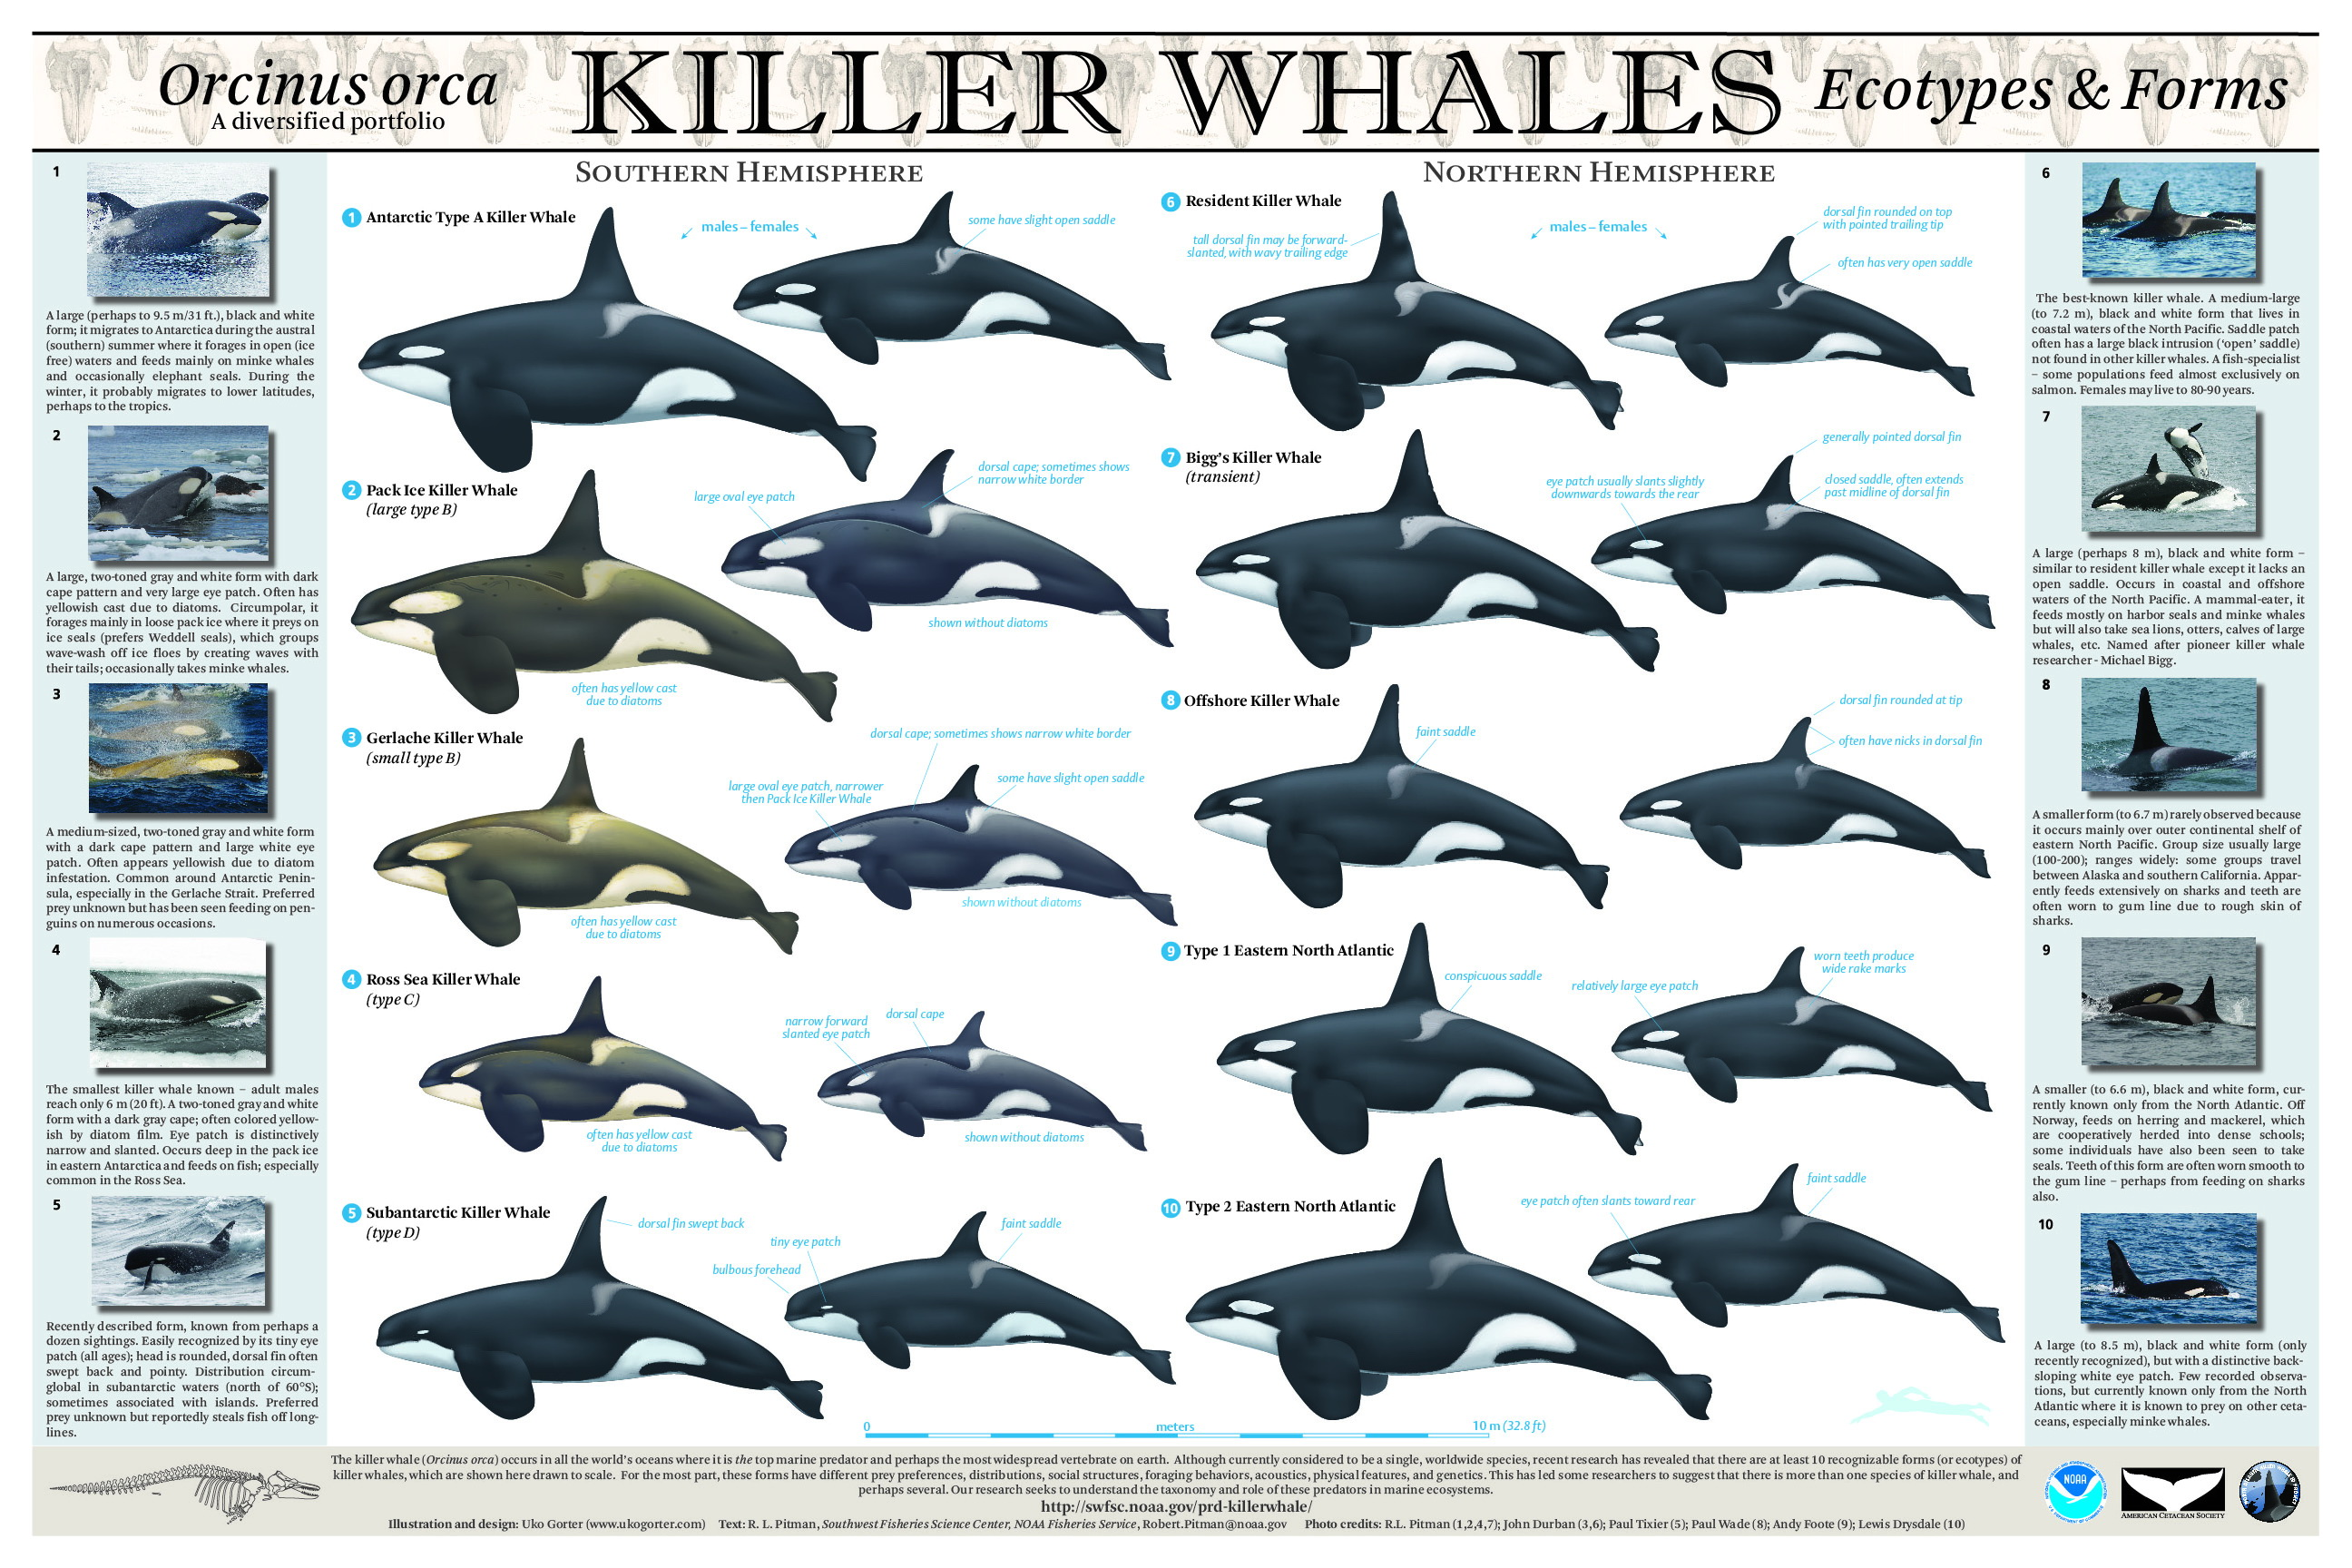 What Taking Orca Whales From the Wild for Captivity Does to Wild Pods